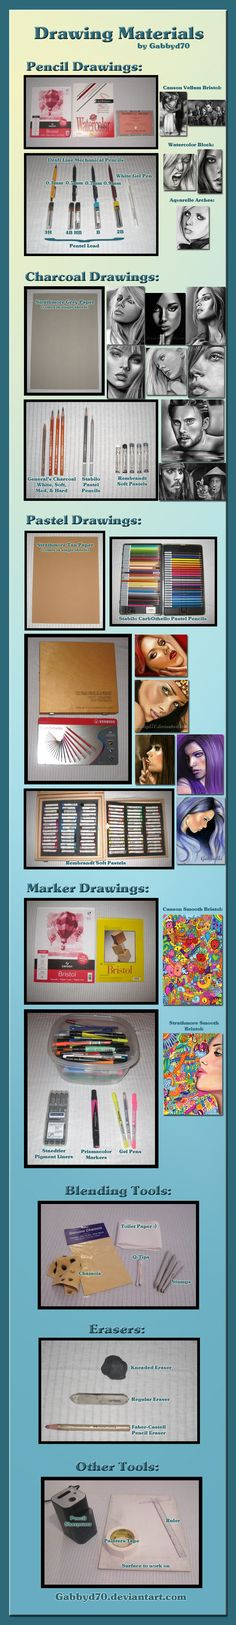 Drawing Materials like paper, pencils, pastels, charcoal, markers, and erasers. -- Drawing tools, inspiration, tutorial, anime/manga, realistic